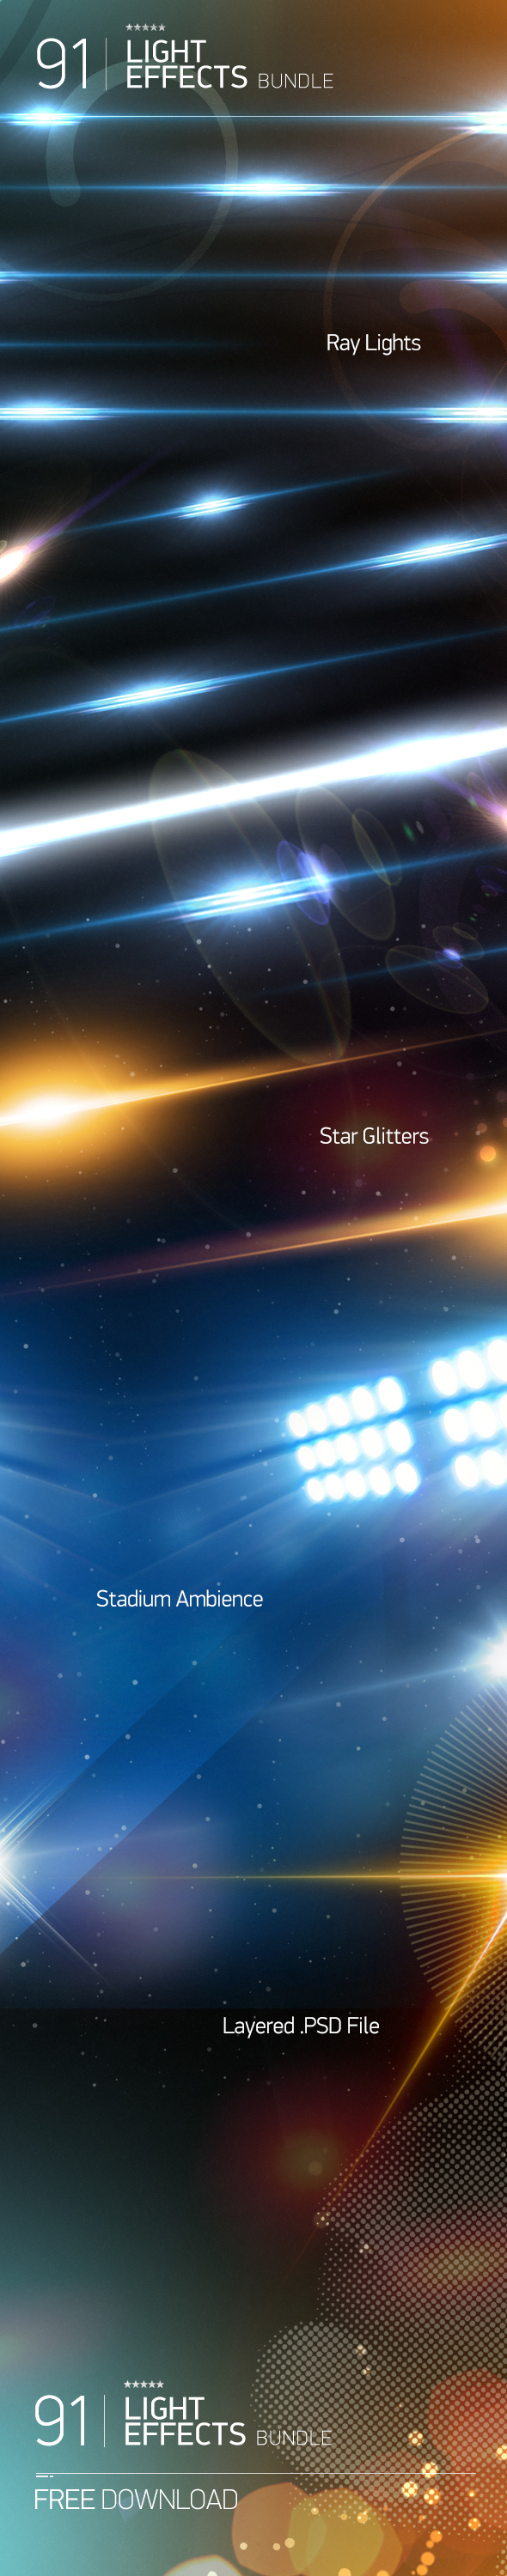 Light Effect Psd Free Download Free 91 Light Effects Psd on